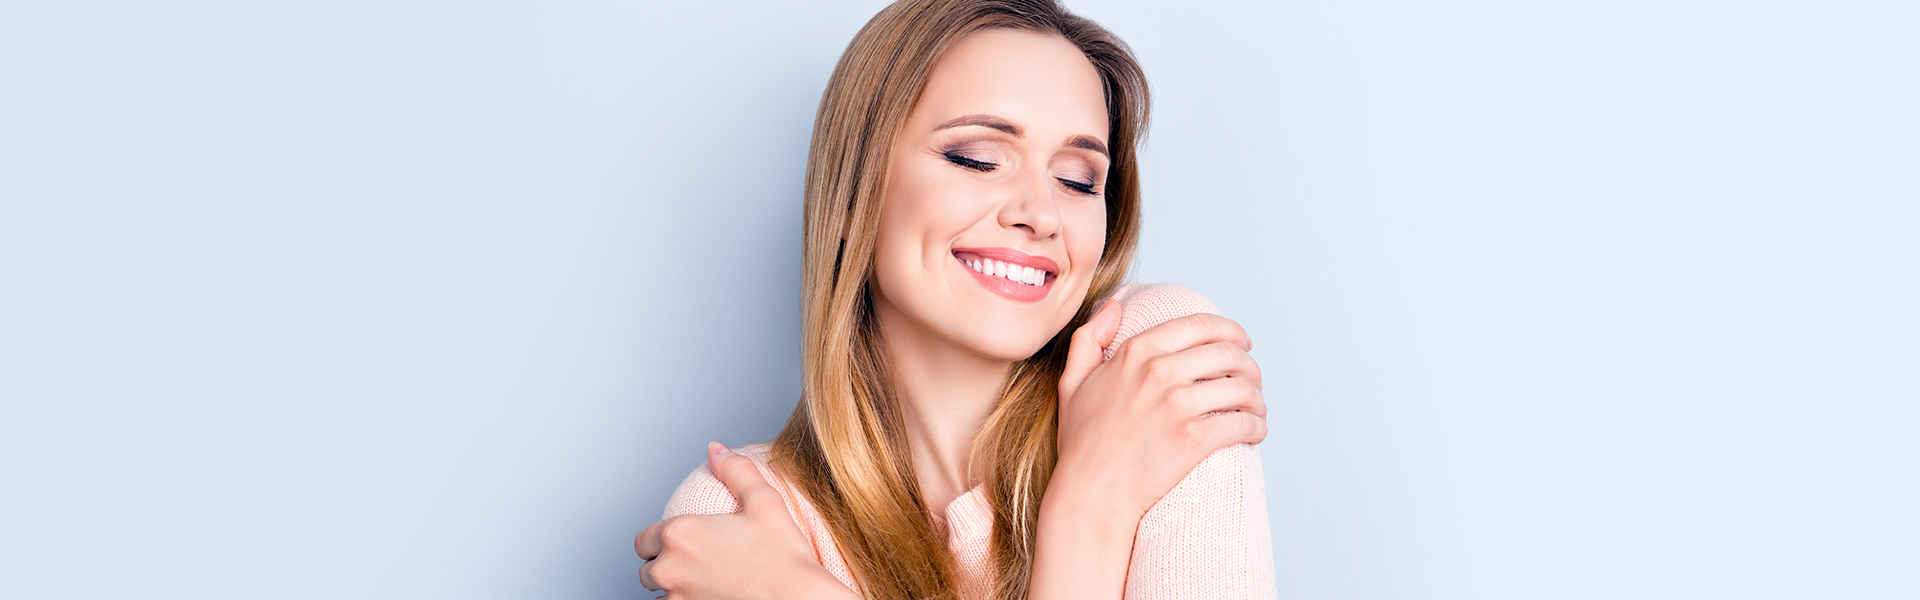 What to Expect from Smile Makeovers in Cordova?